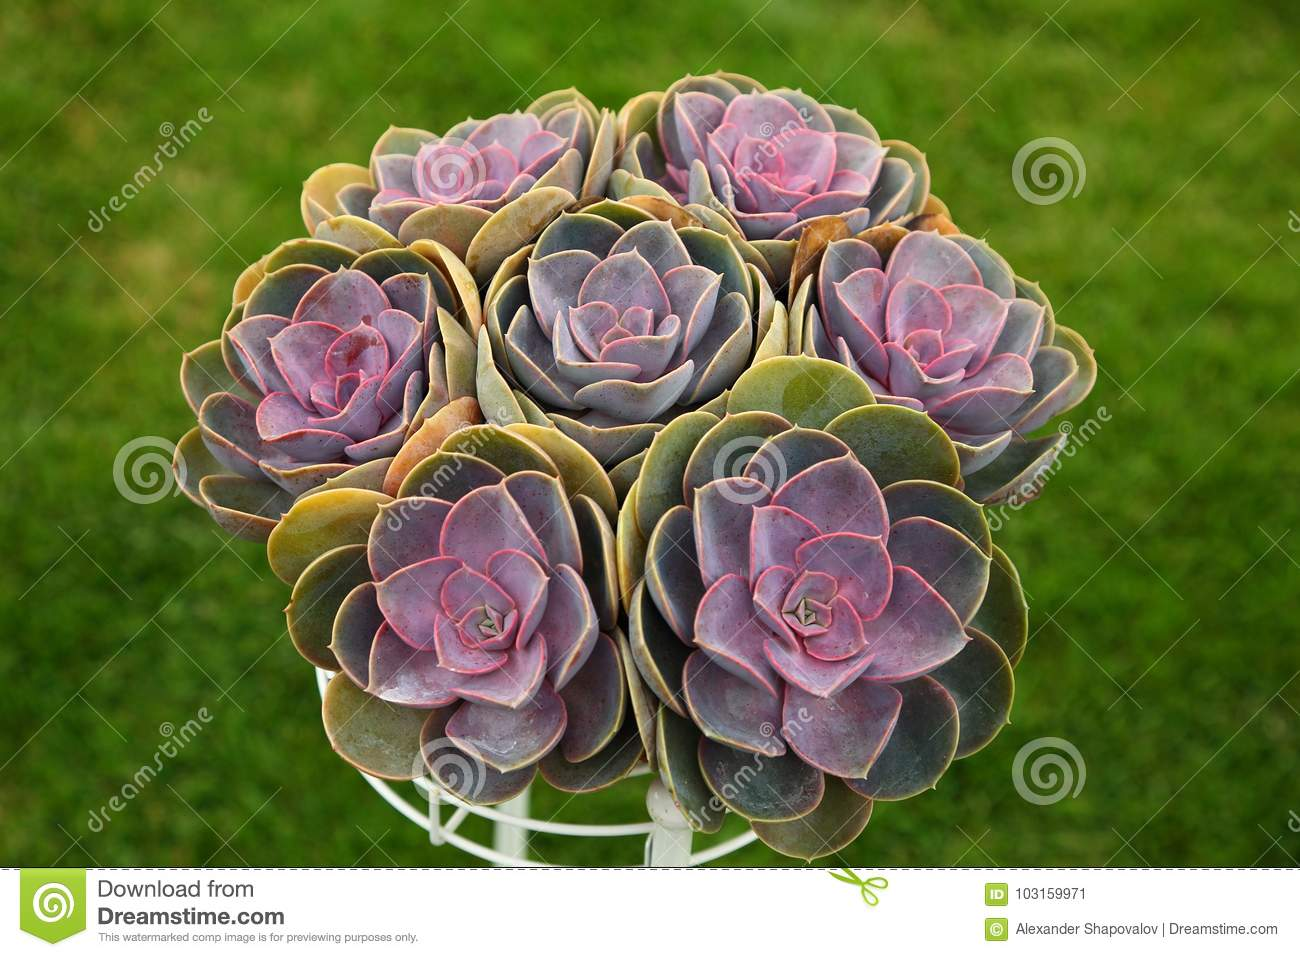 Aeonium isolated on a green background